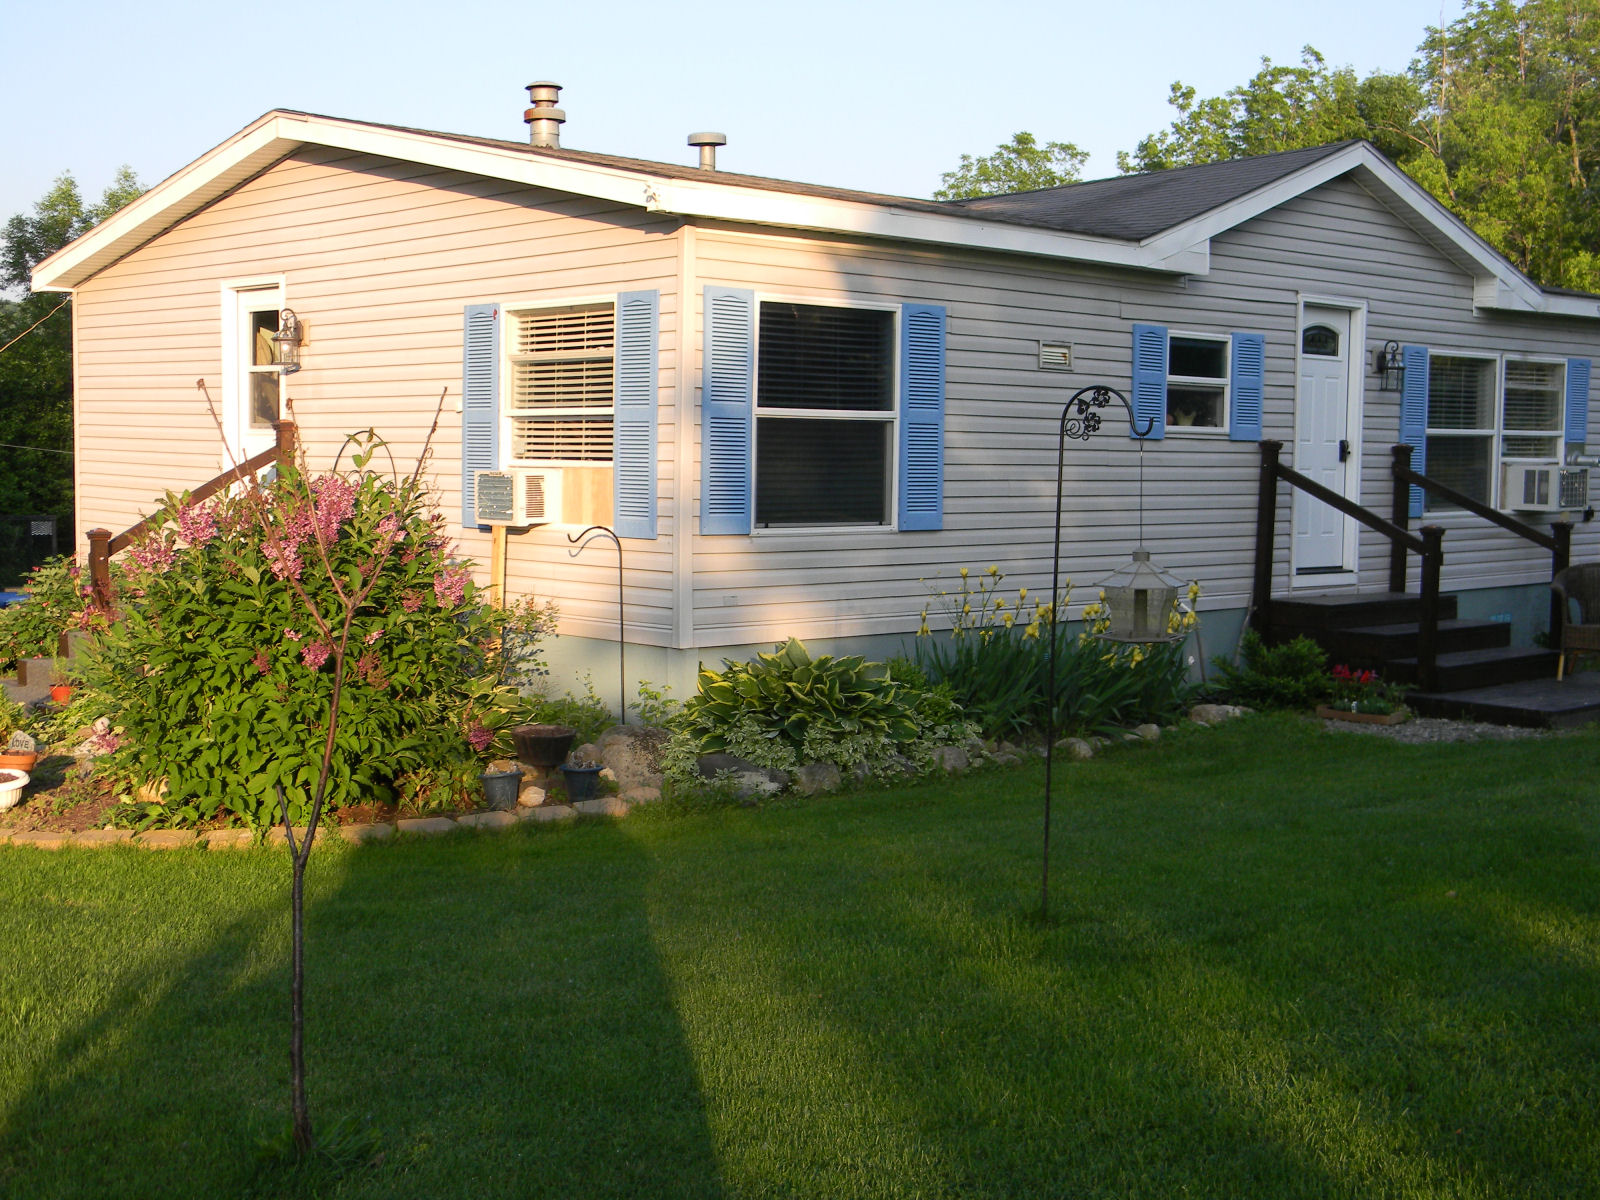 Landscaping front landscaping ideas mobile homes for Home front landscaping